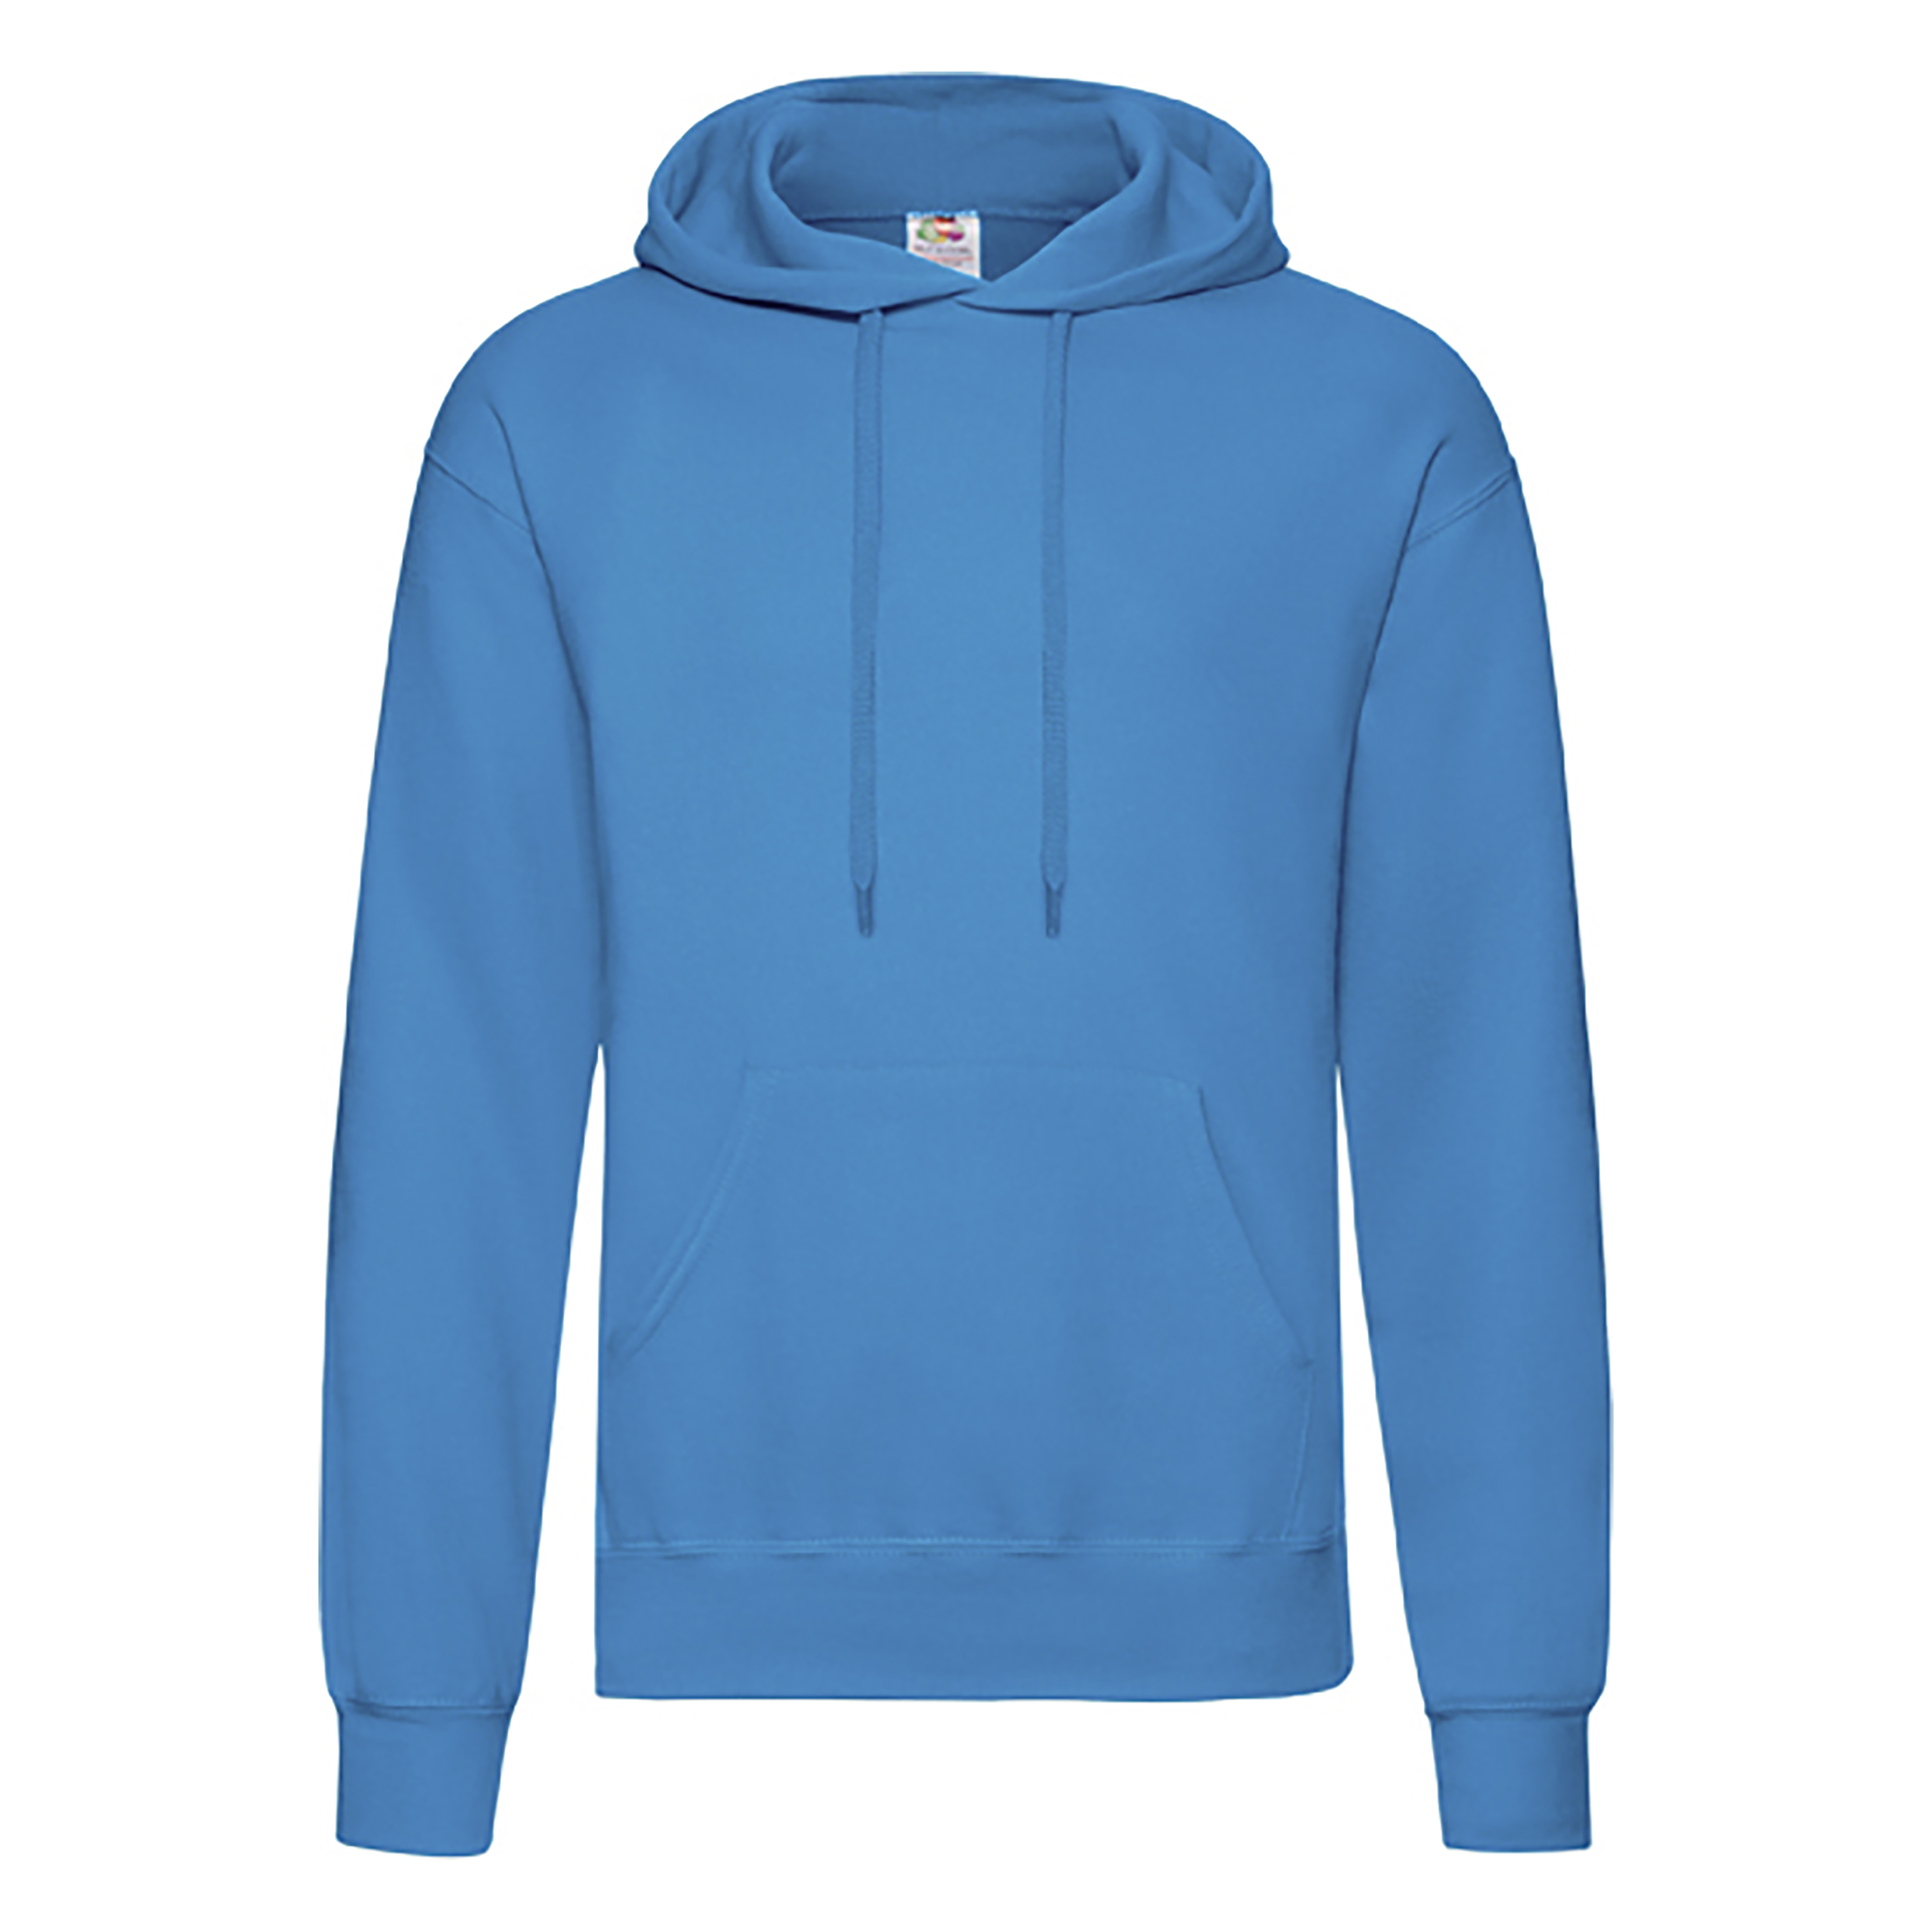 Bluza Męska Z Kapturem Hooded Sweat 622080 80/20 280g